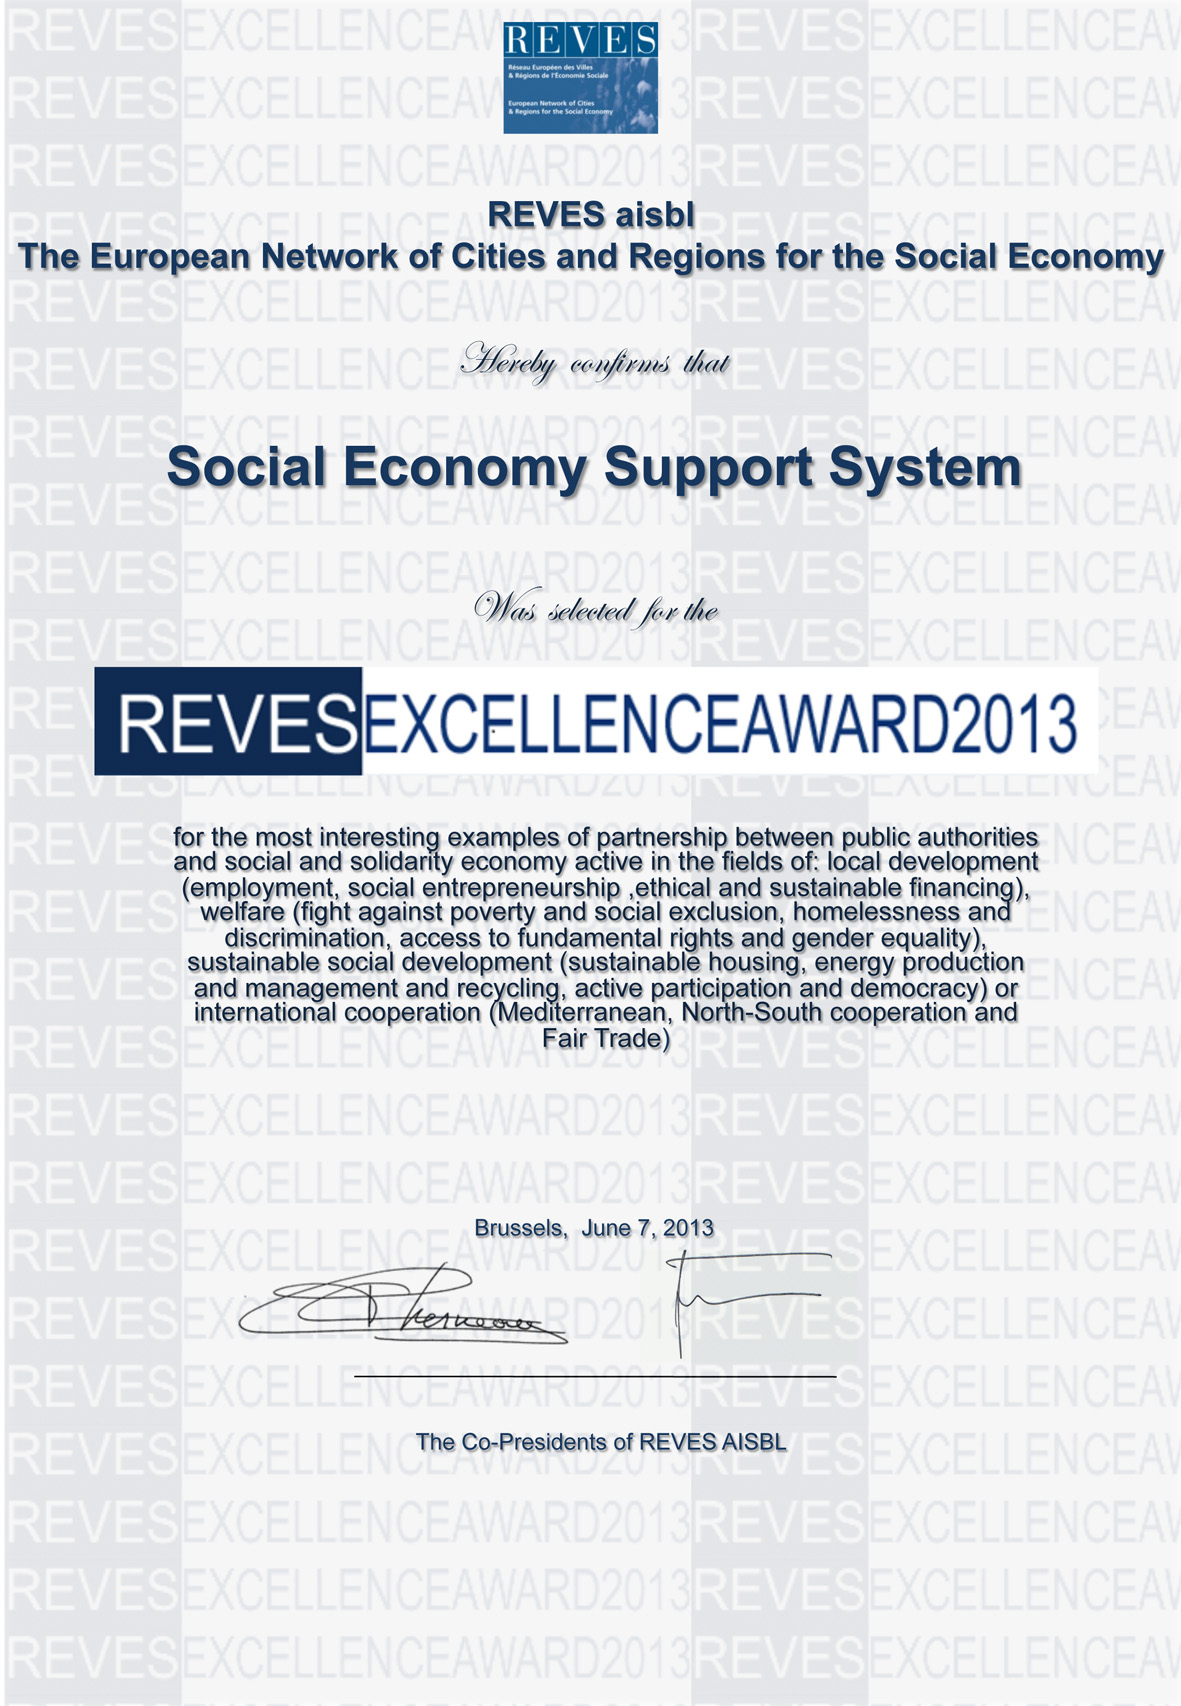 certificate_Social_Economy_Support_System